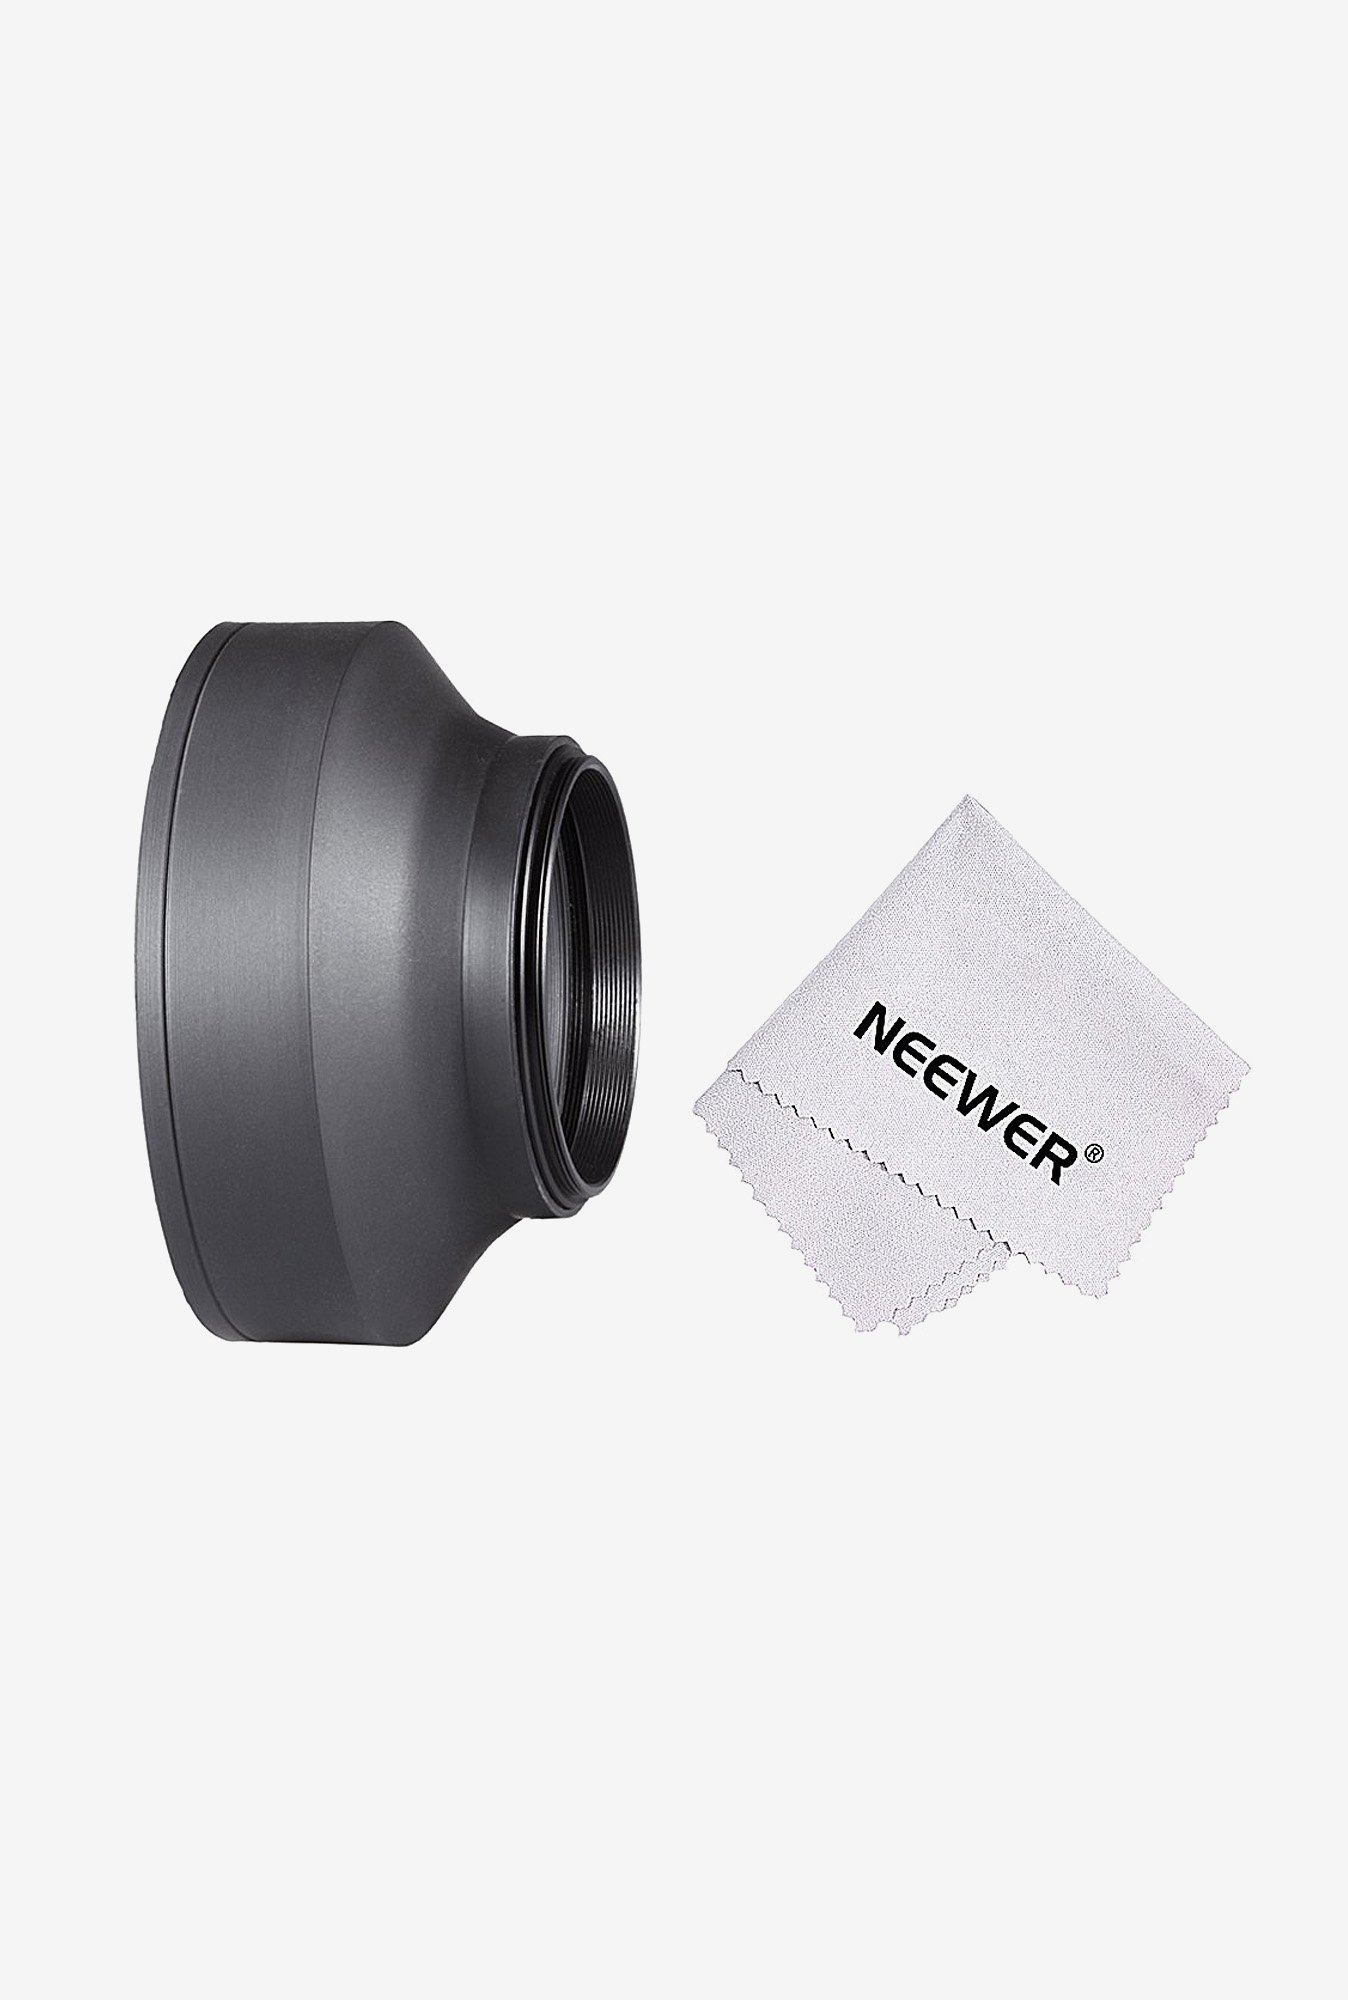 Neewer 10083958 62mm Collapsible Rubber Lens Hood (Black)